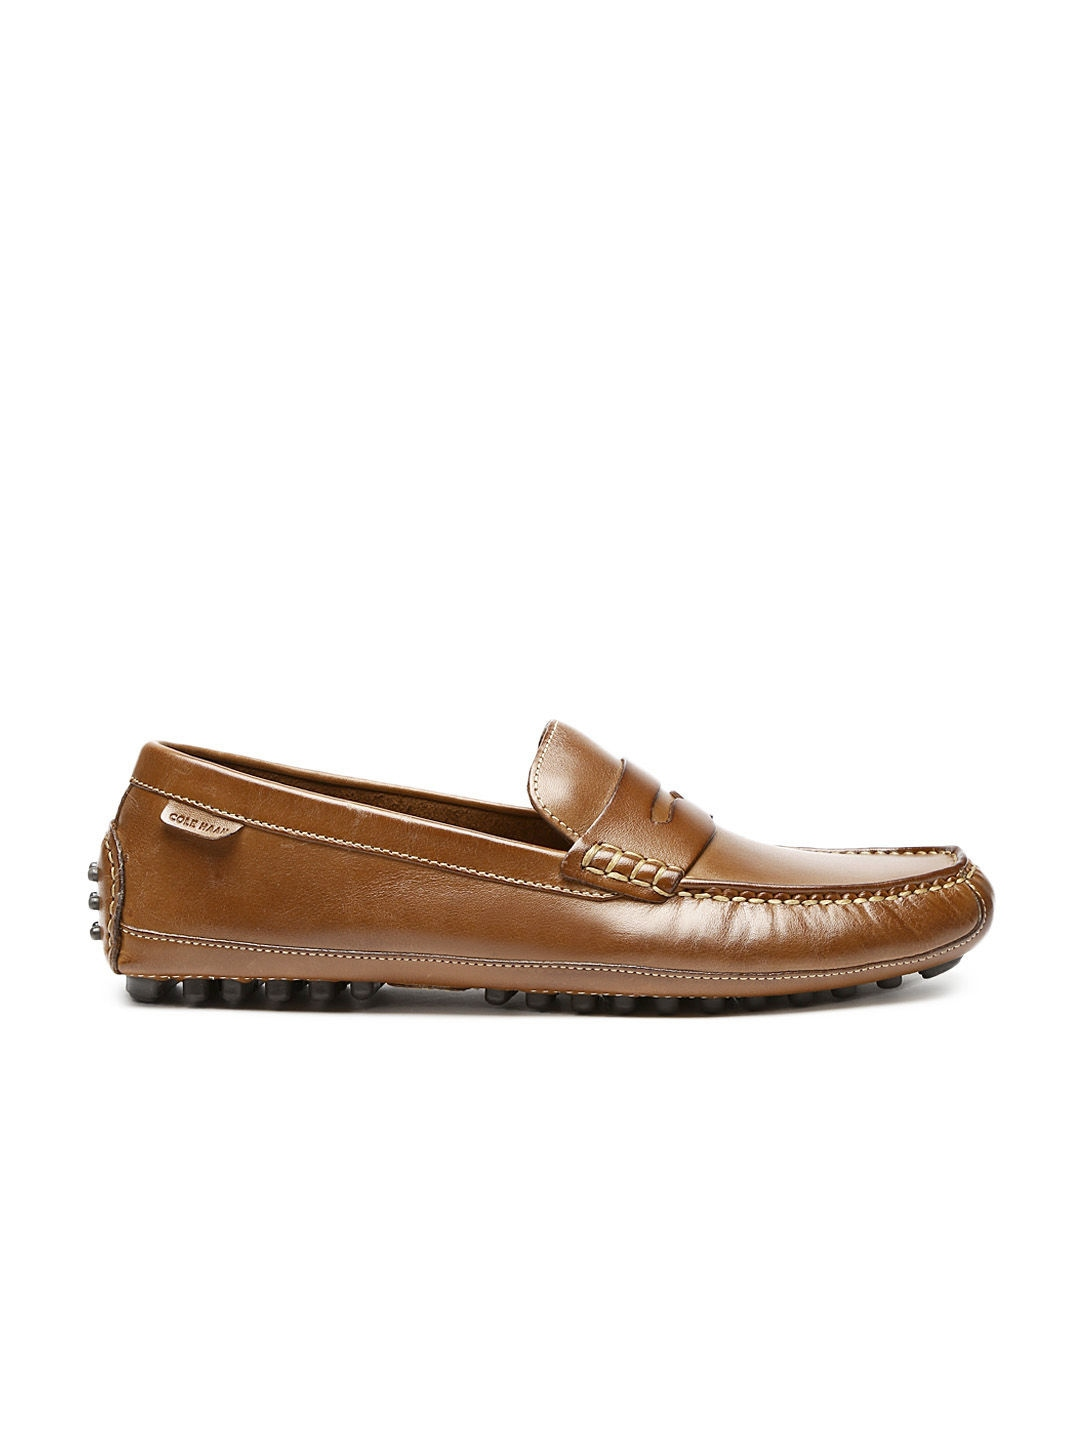 myntra cole haan men brown leather loafers 607231 buy myntra cole haan casual shoes at best. Black Bedroom Furniture Sets. Home Design Ideas